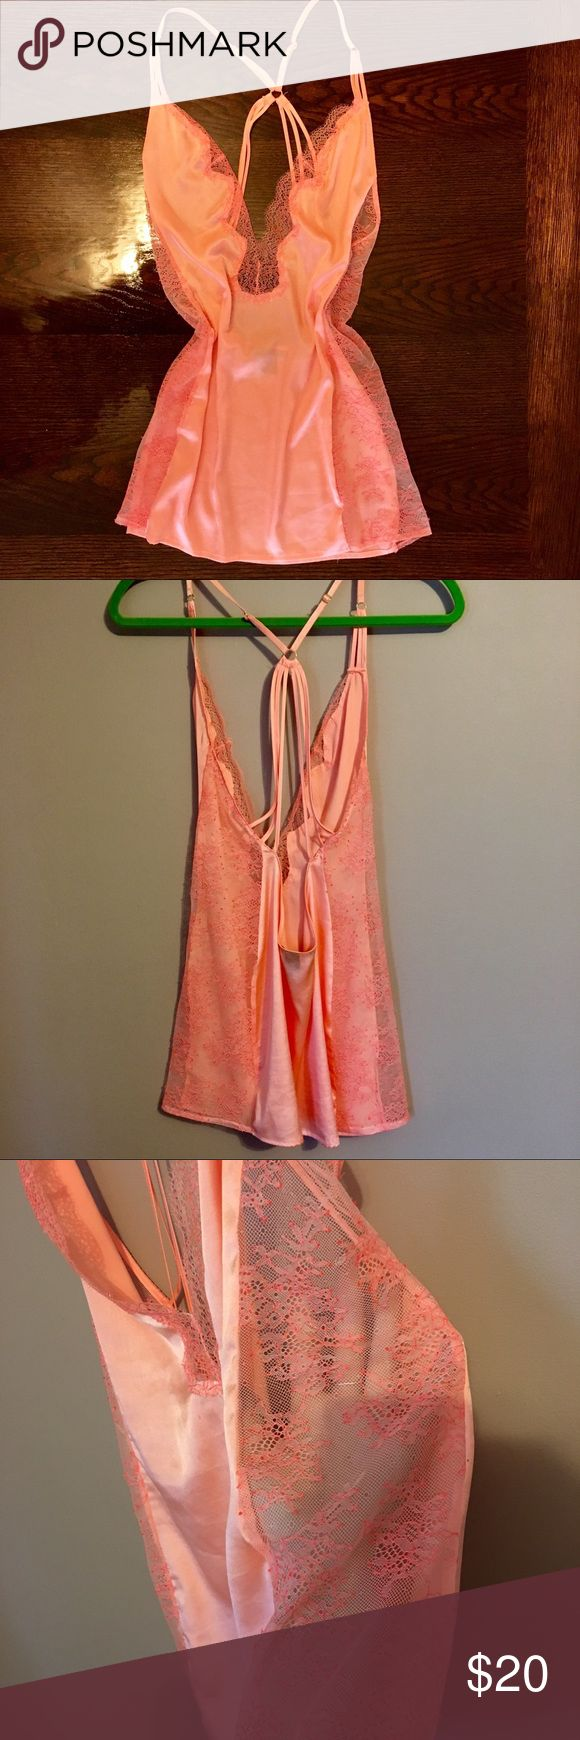 ✨SALE✨ Victoria's Secret Silky Lace Plunge Slip Coral strappy cross back slip from Victoria's secret. Lace side panels and deep plunge. Has been hanging in my closet and decided to part ways after never wearing 🌸 Victoria's Secret Intimates & Sleepwear Chemises & Slips